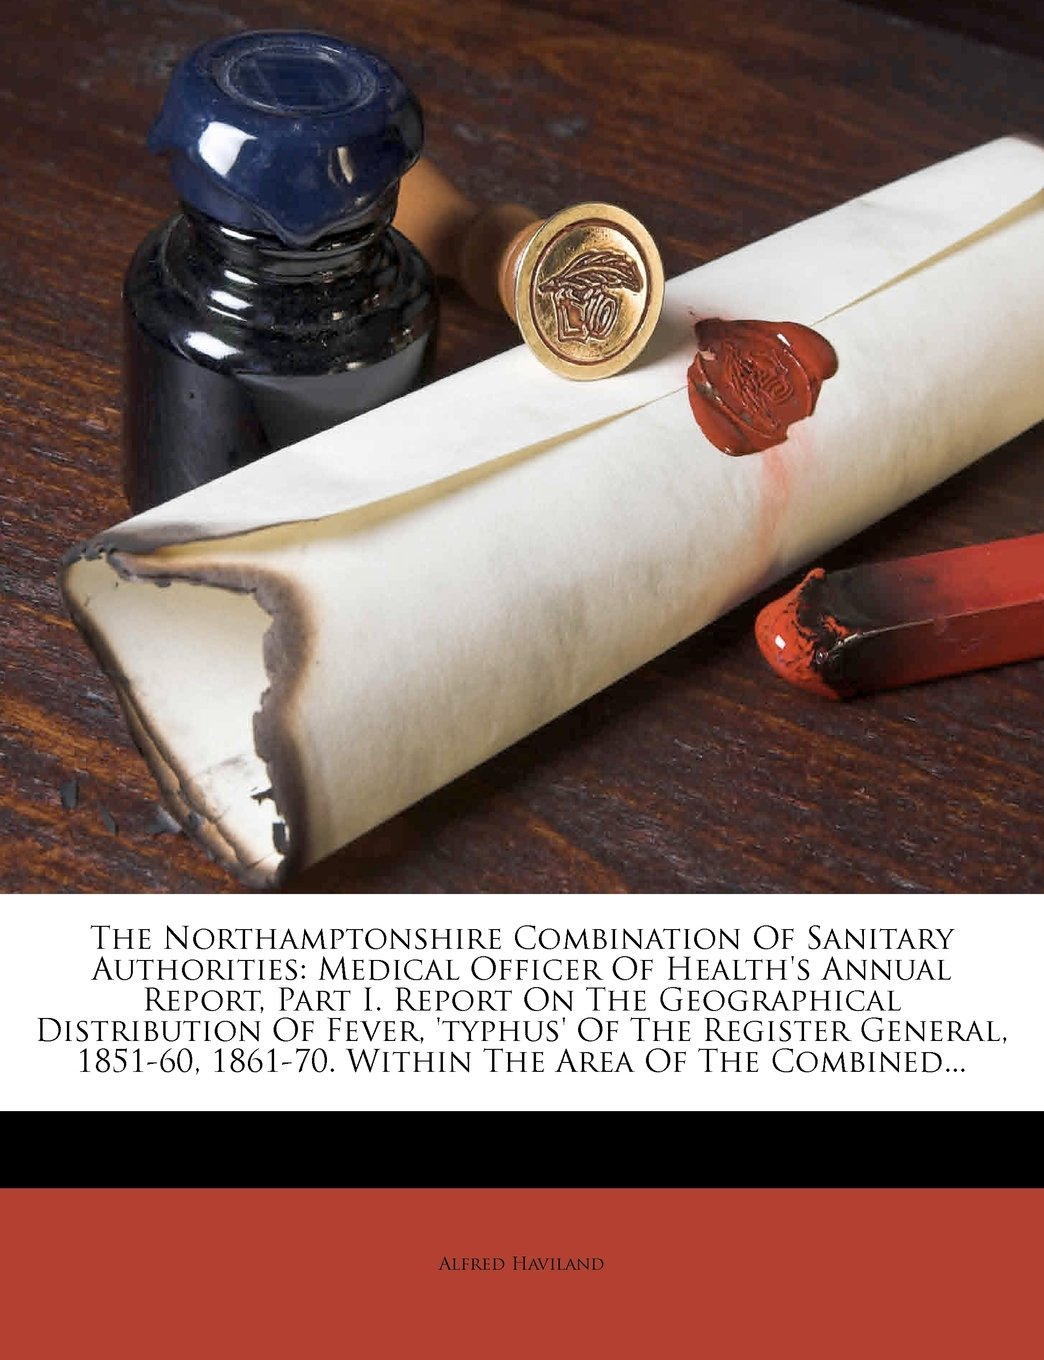 Download The Northamptonshire Combination Of Sanitary Authorities: Medical Officer Of Health's Annual Report, Part I. Report On The Geographical Distribution ... 1861-70. Within The Area Of The Combined... pdf